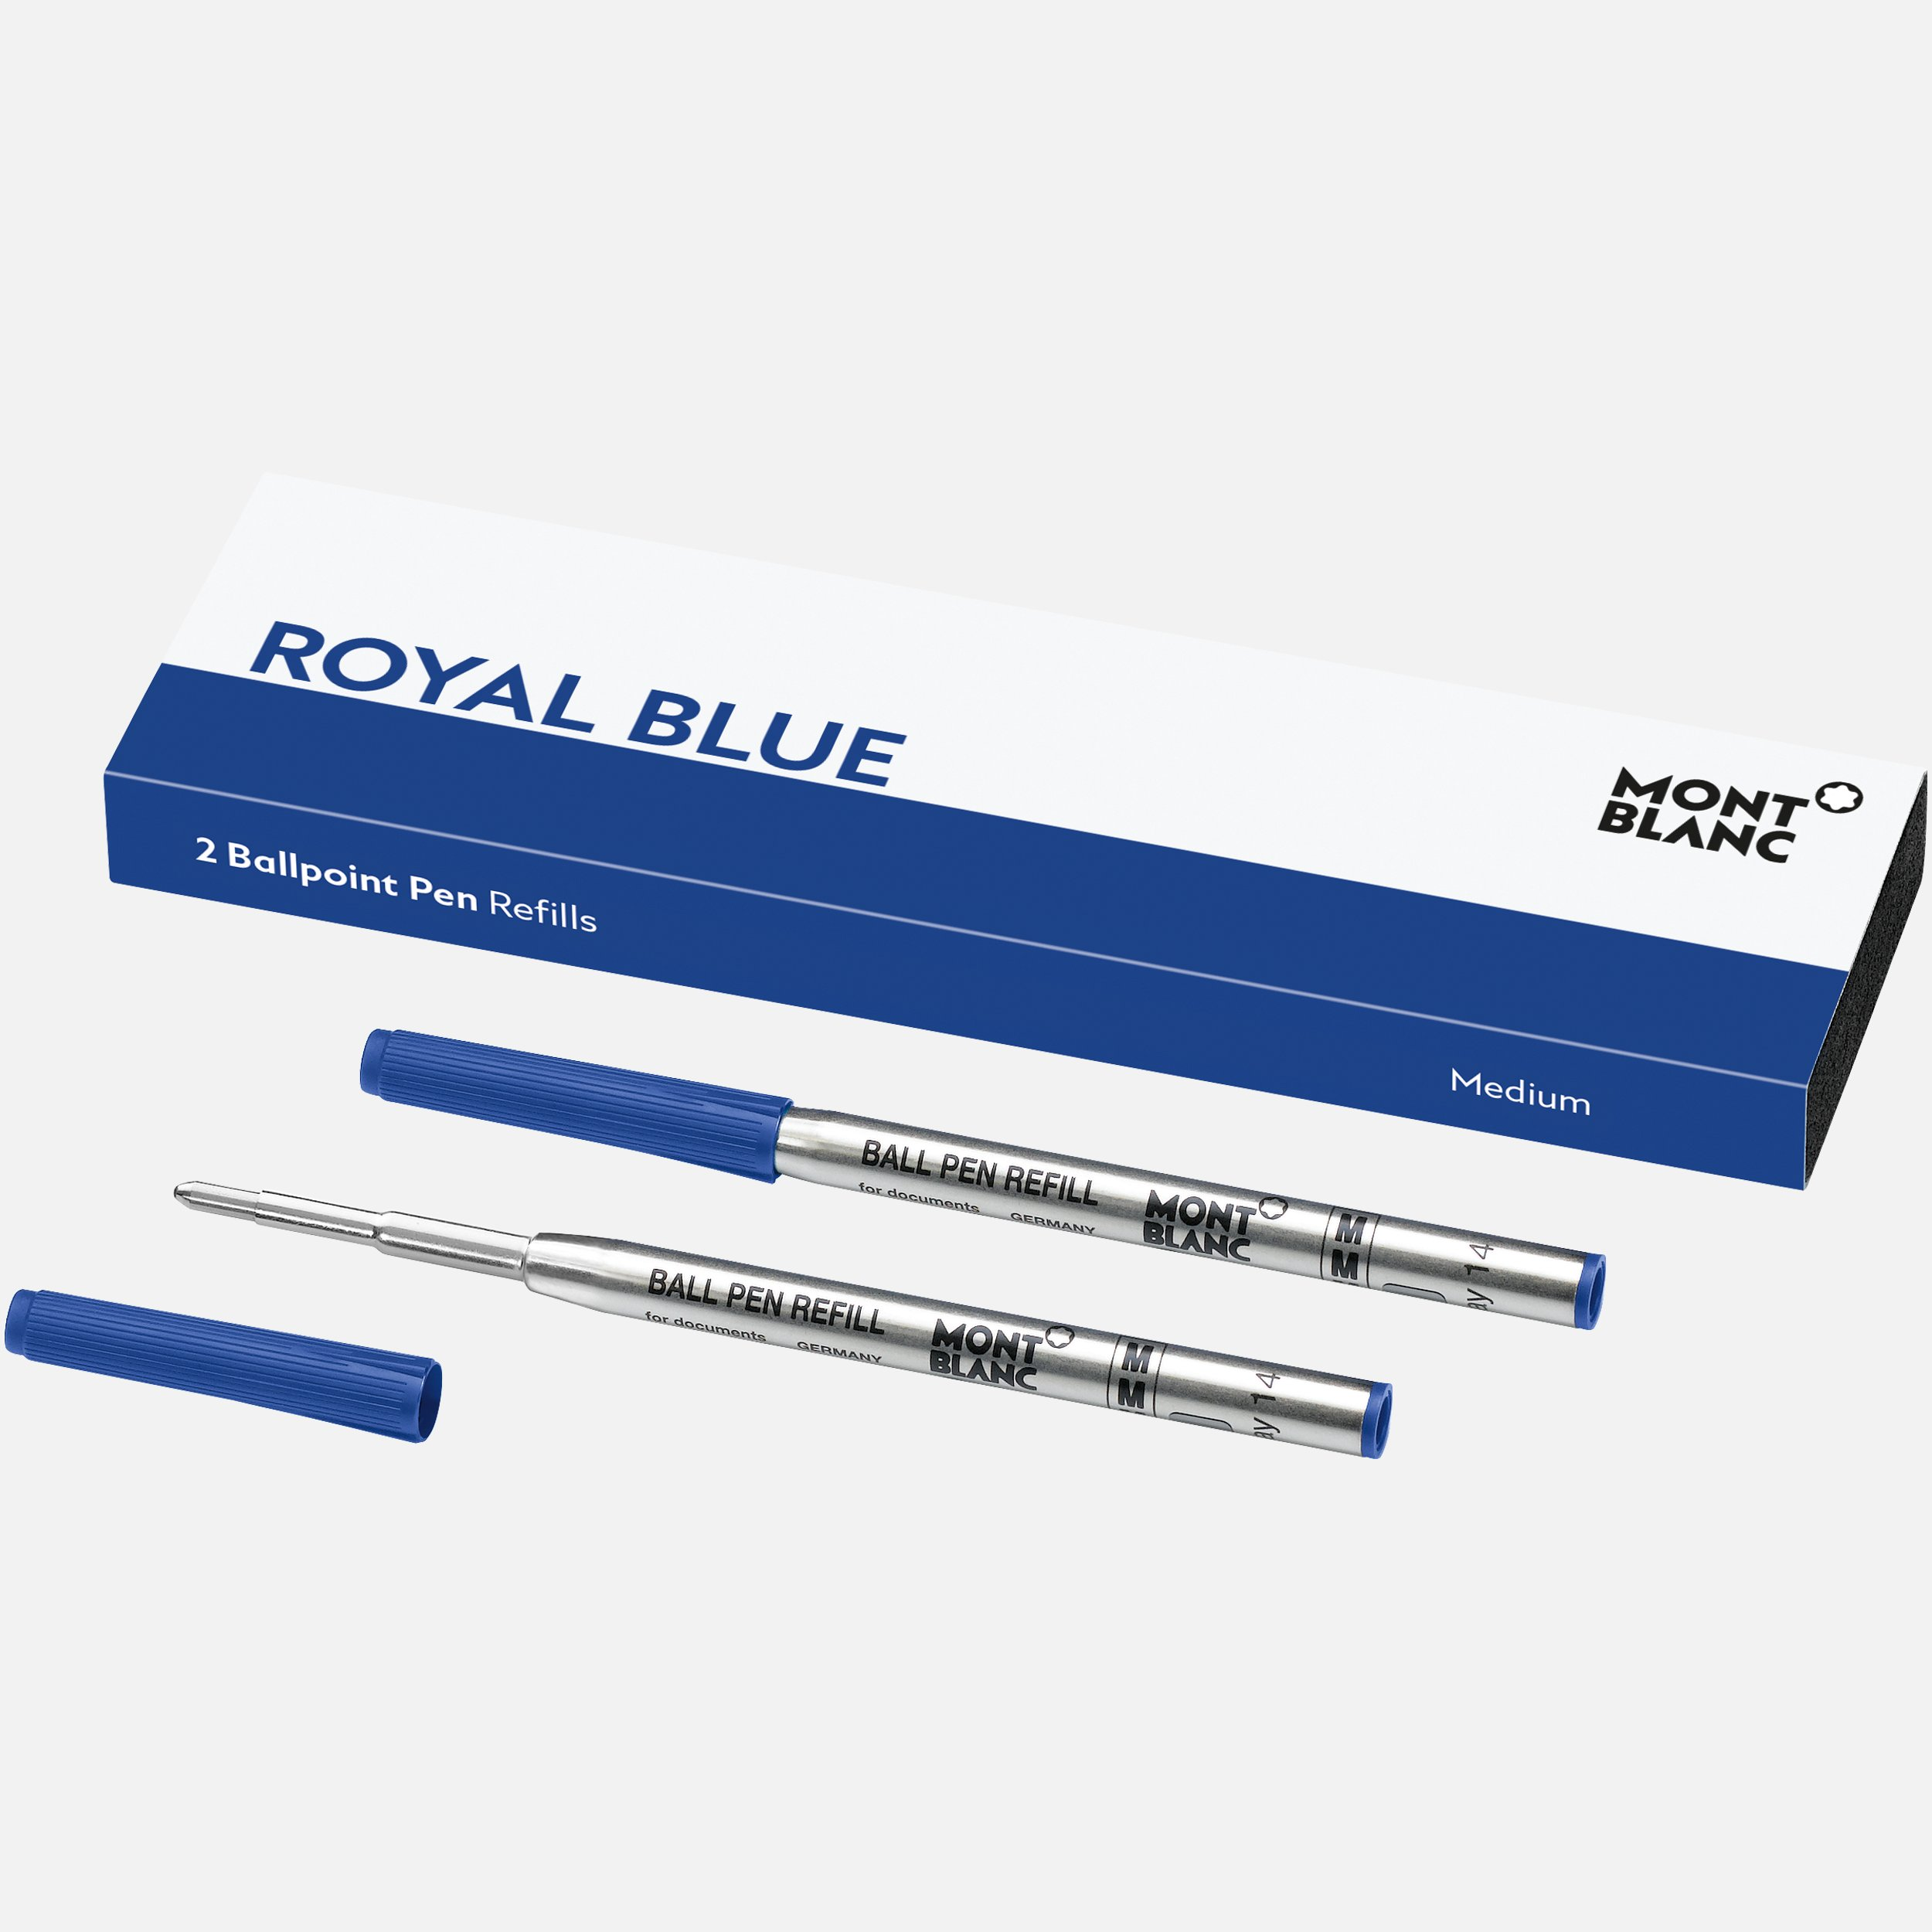 2 recharges pour stylo bille, Royal Blue, Montblanc